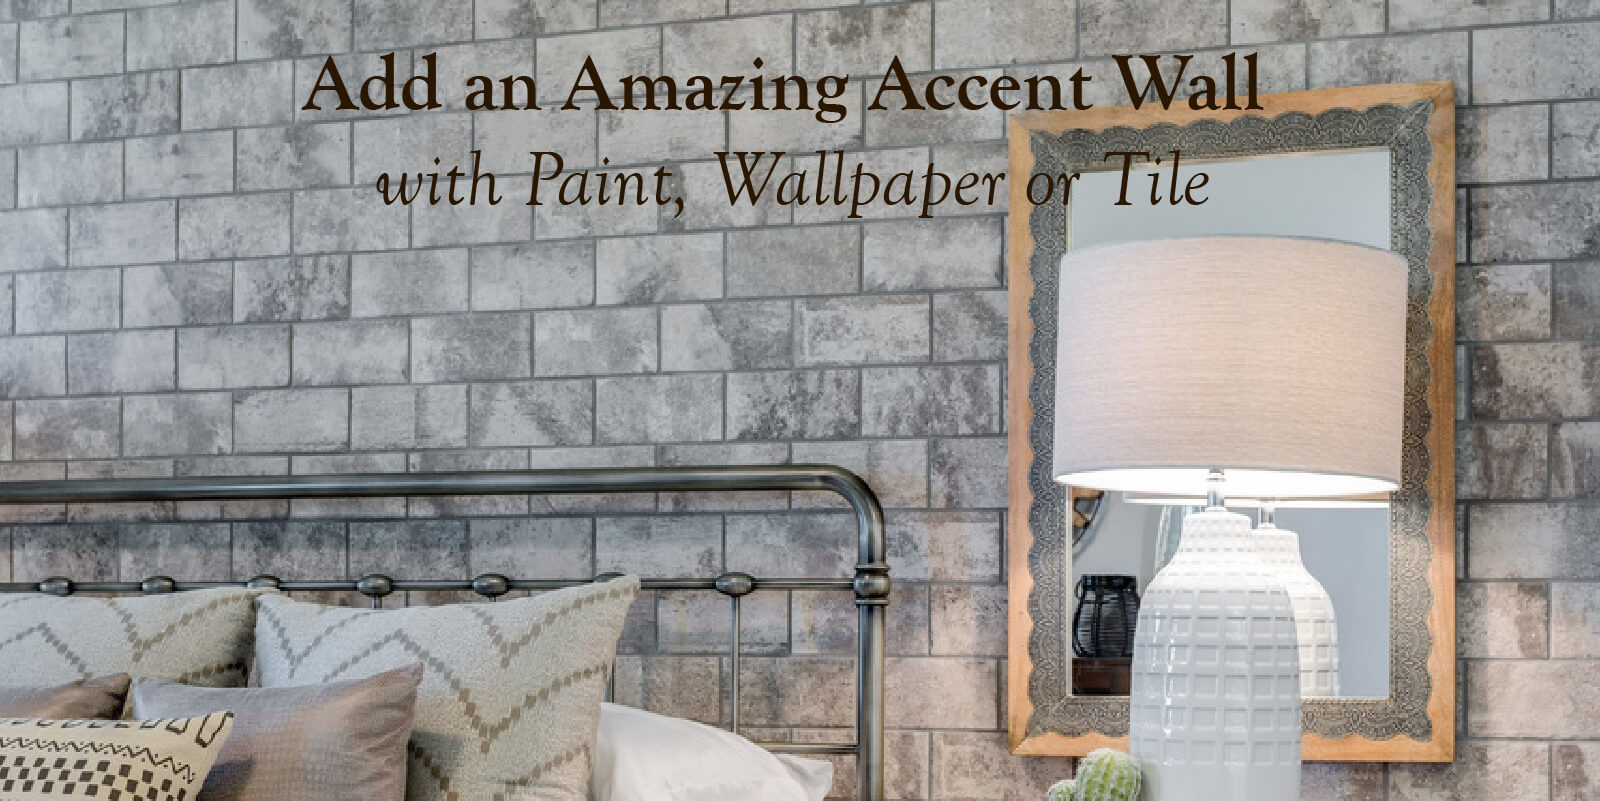 Add an amazing accent wall with paint, wallpaper or tile